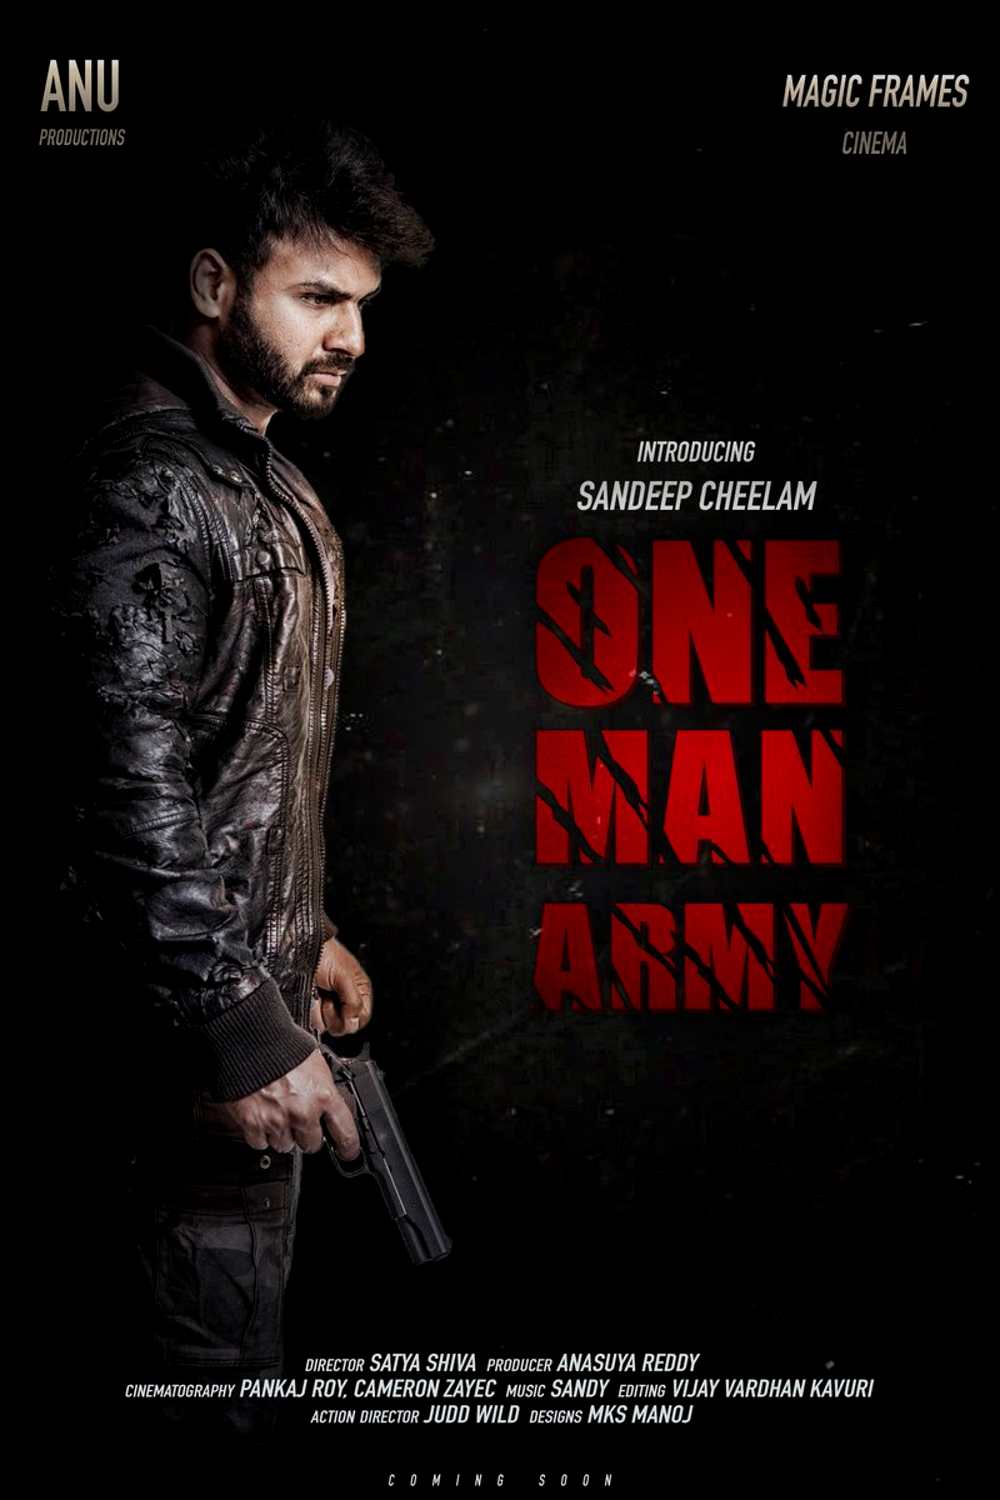 Sandeep Cheelam One Man Army first look poster